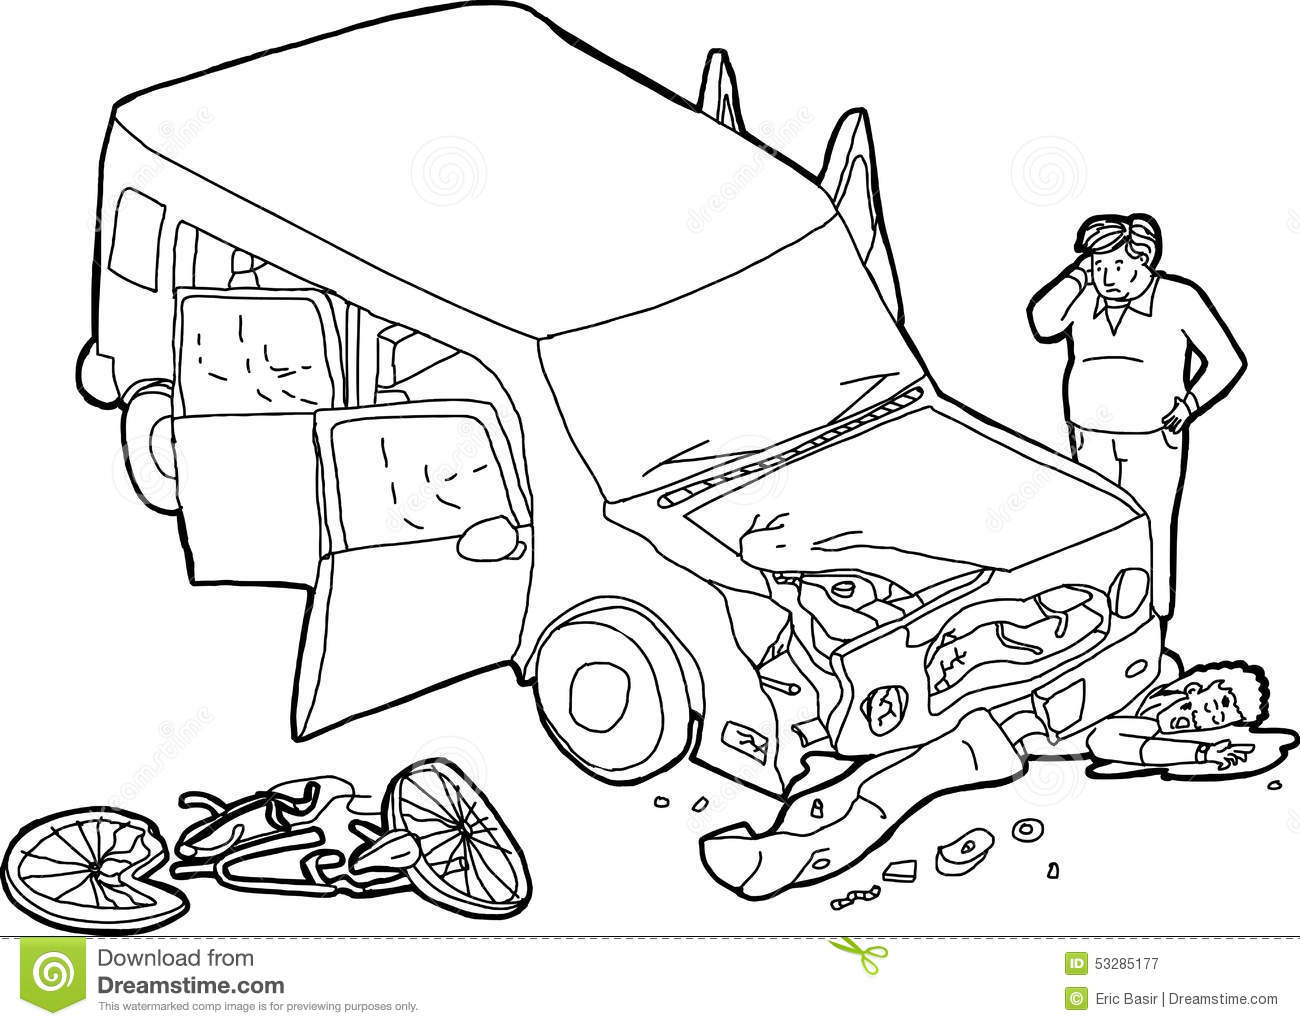 Outline Of Crashed Car And Bicyclist Stock Illustration